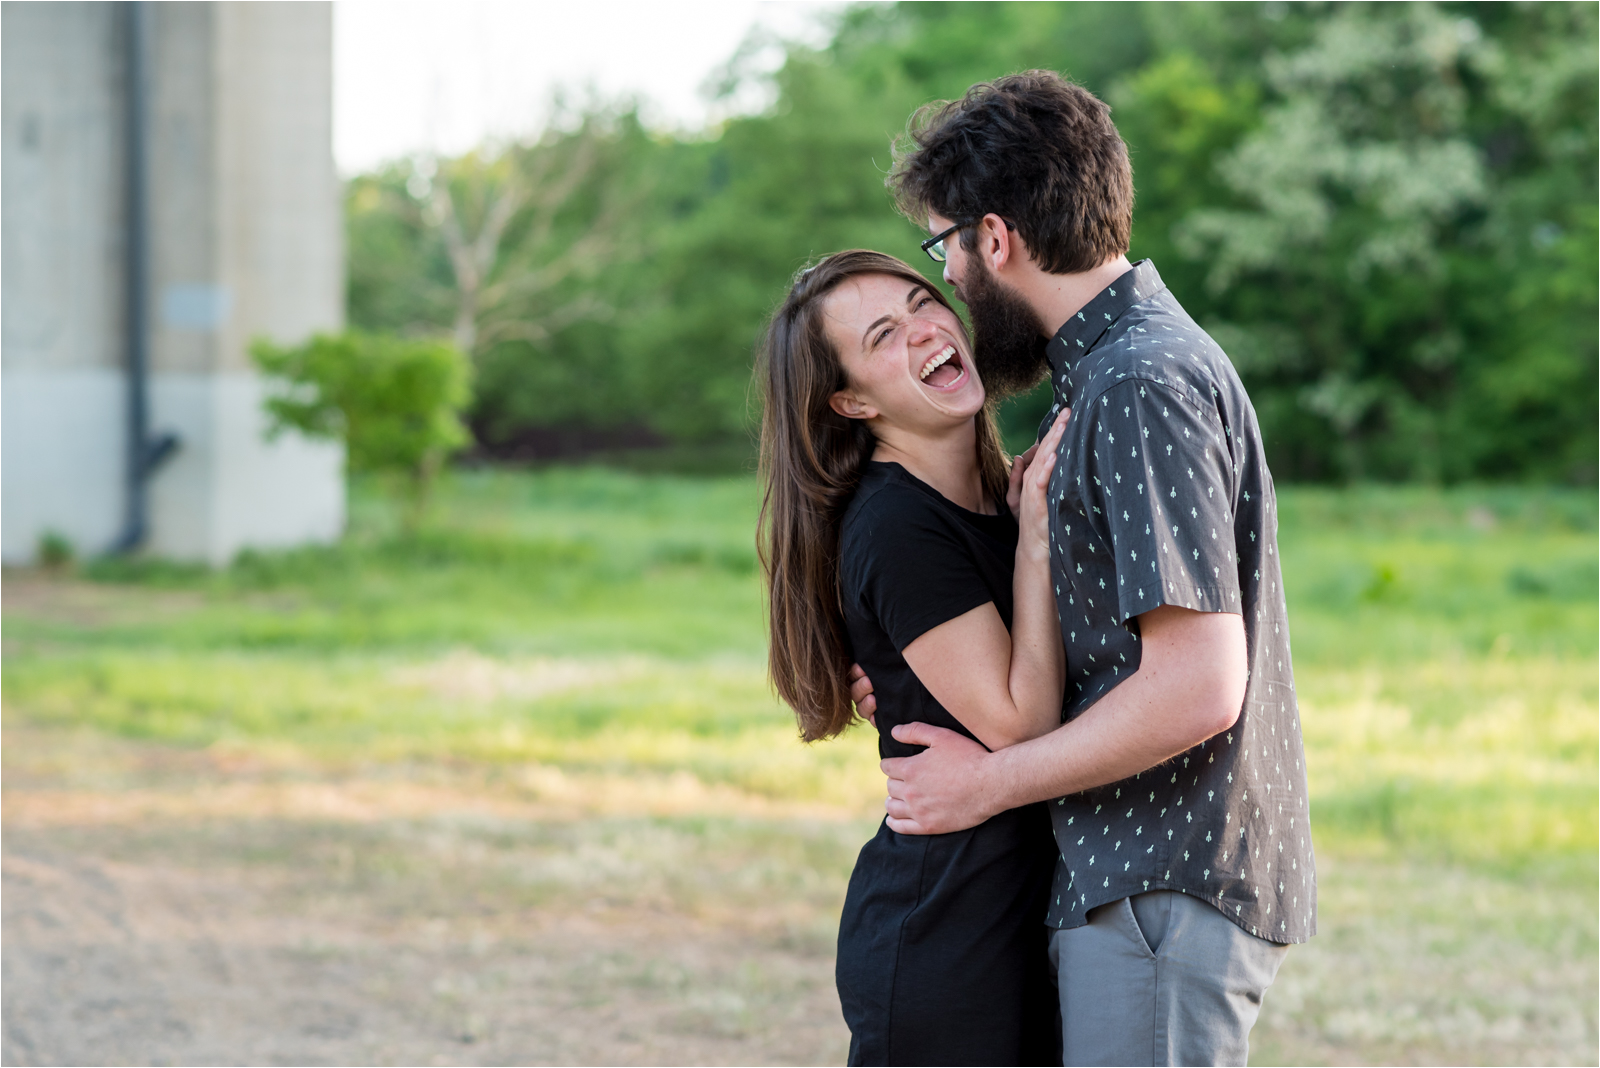 engagement-session-belle-isle-richmond-virginia-rva-va-focus-on-joy-photography-jessica-capozzola-man-woman-navy-cactus-shirt-black-dress-nude-heels-embracing-engaged-fiance-husband-wife